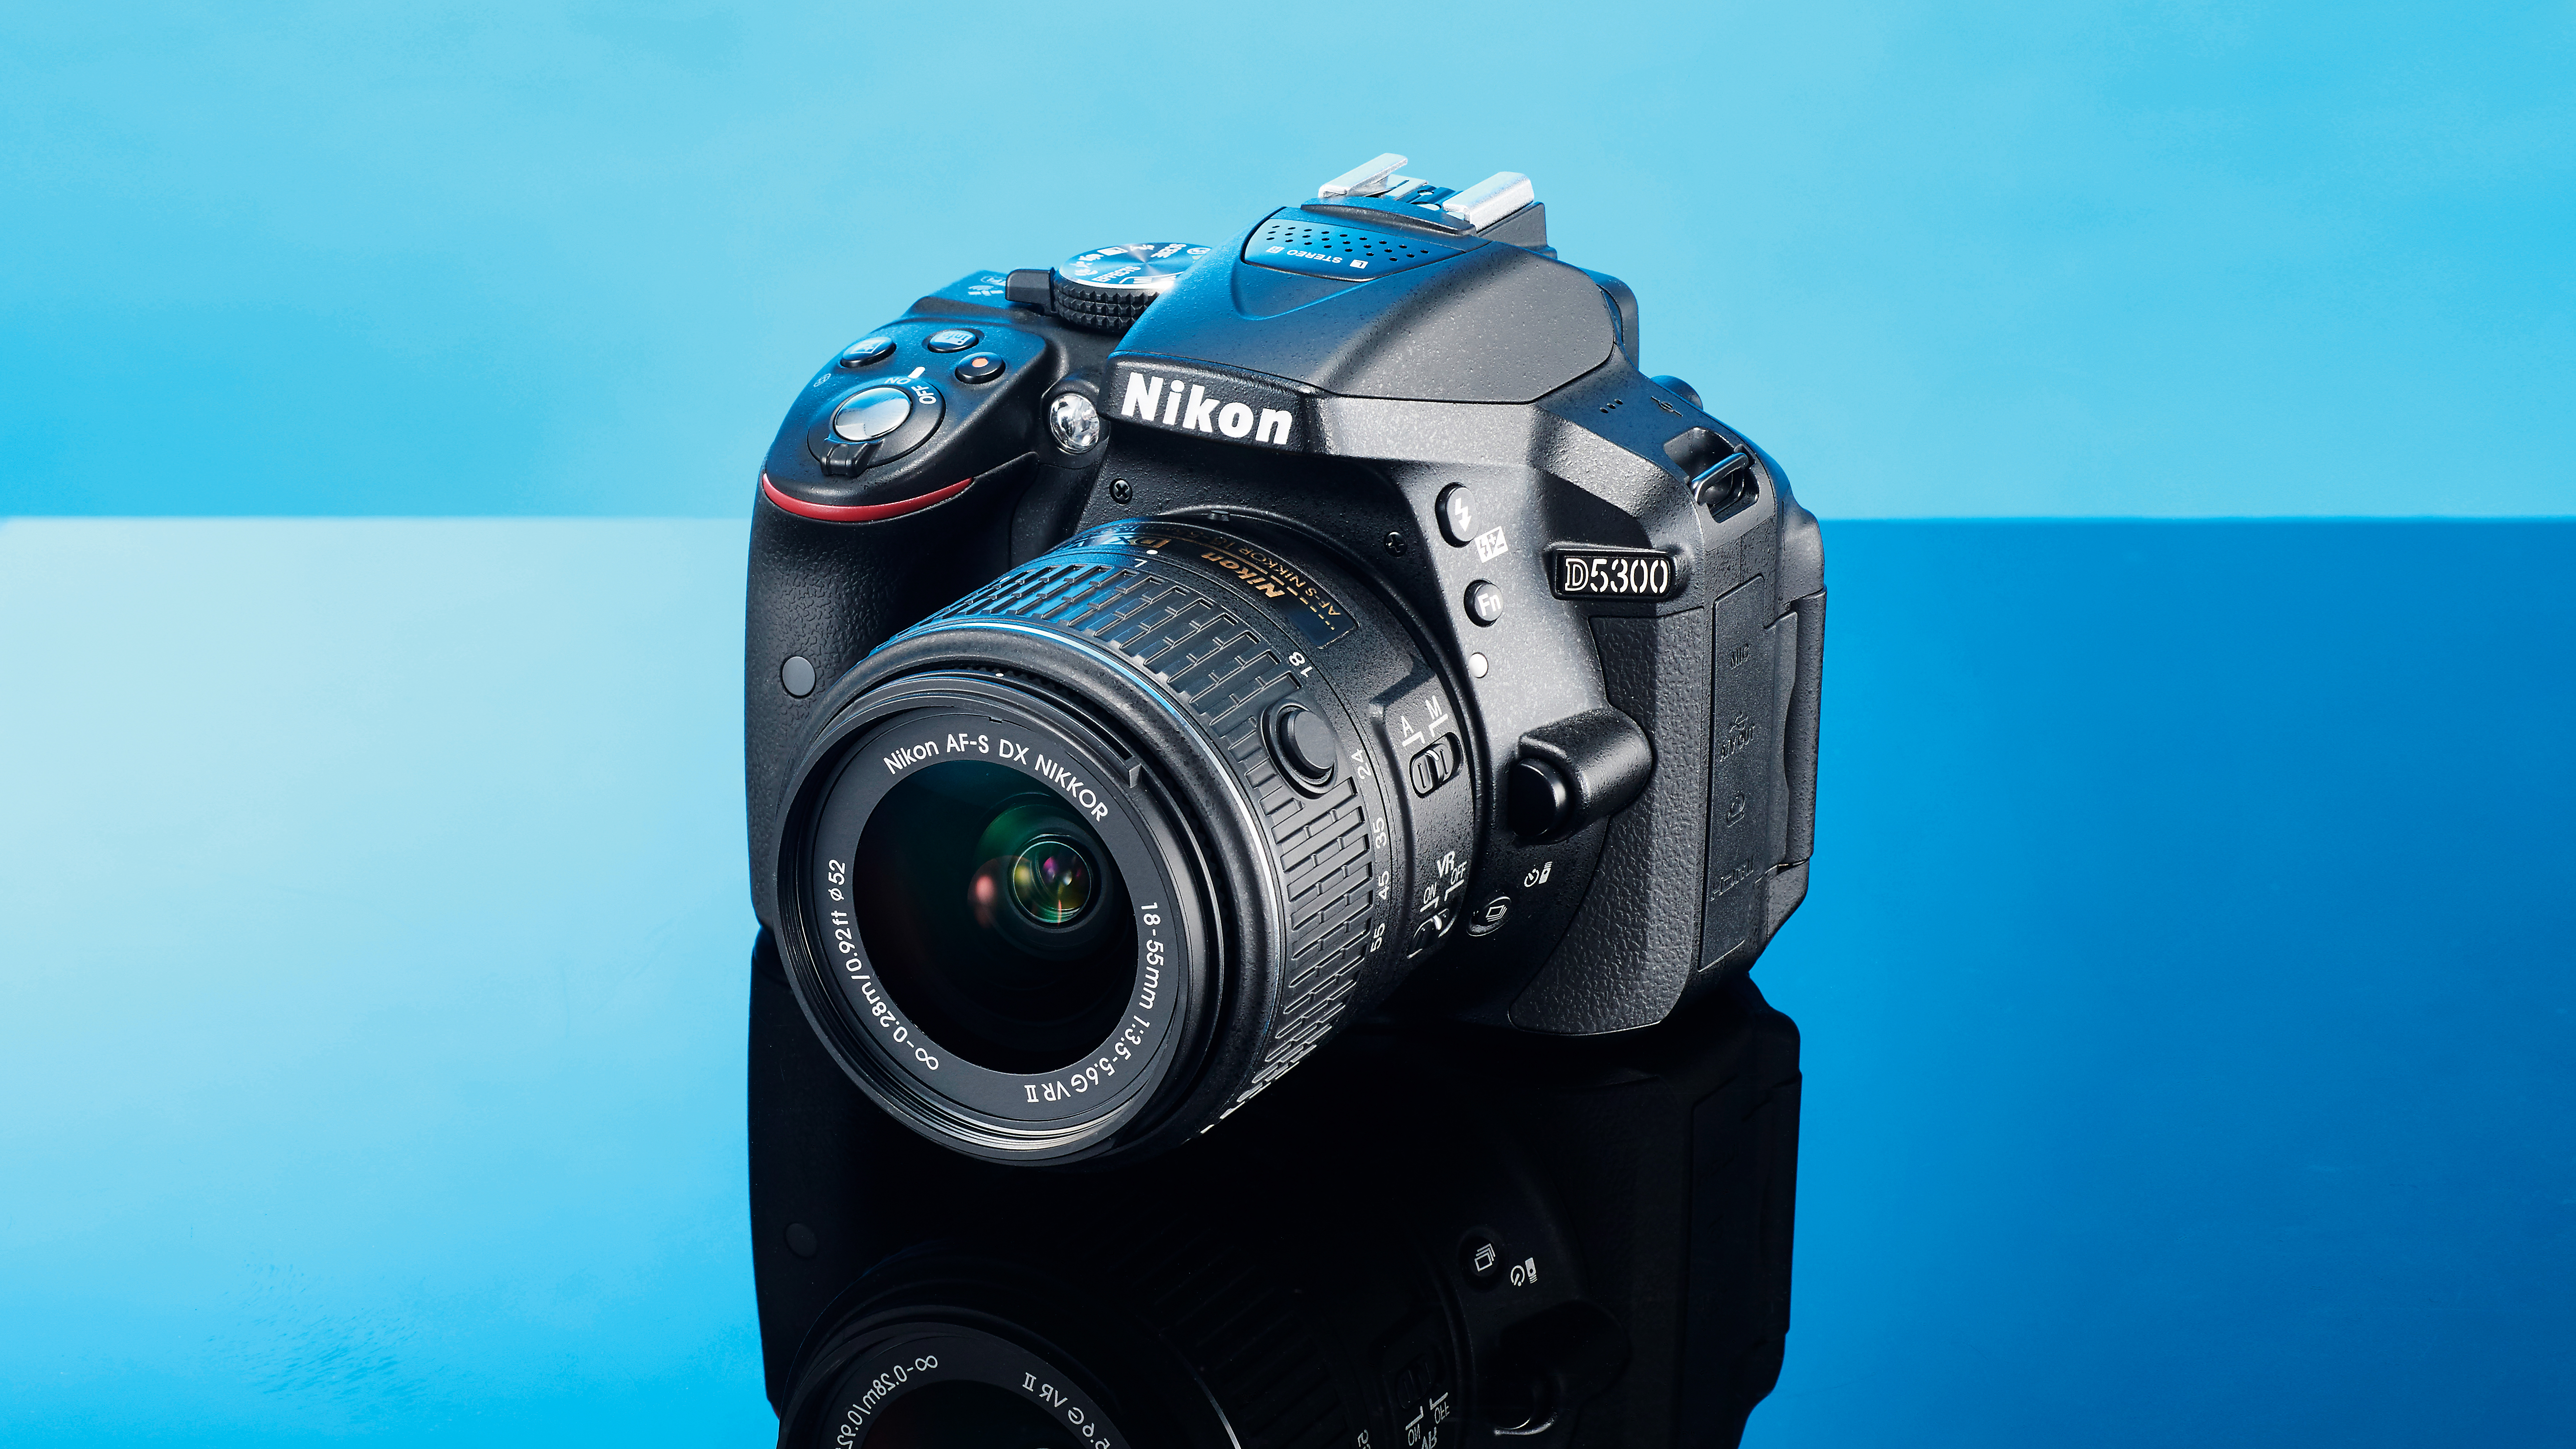 Best DSLR cameras under Rs. 50,000 in India in December 2017 1500464986_776_canon-vs-nikon-which-dslr-should-you-buy